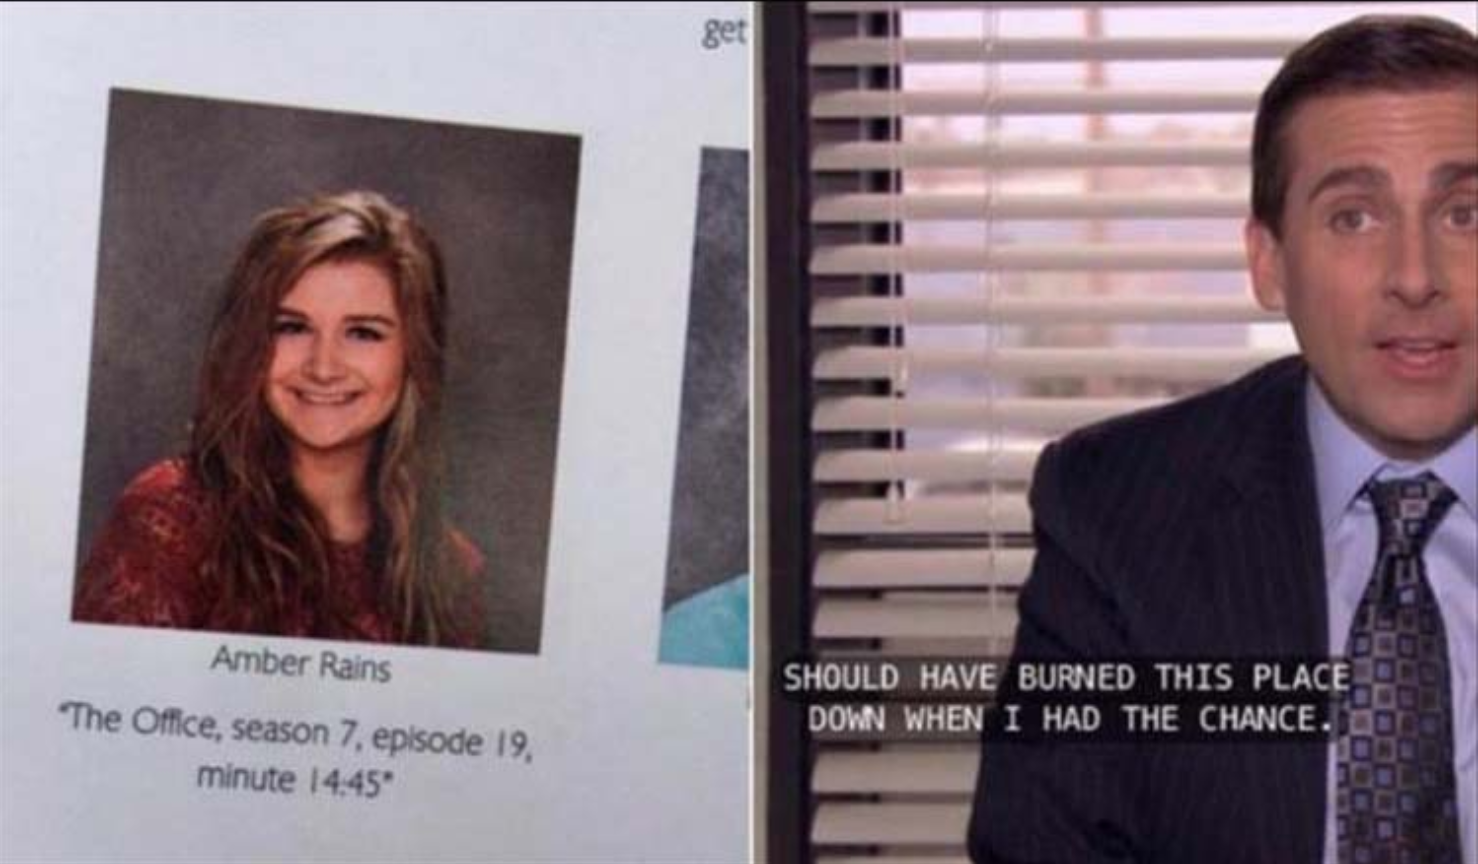 30 Epic Yearbook Quotes That Deserve An A Funny Yearbook Quotes Funny Yearbook Yearbook Quotes